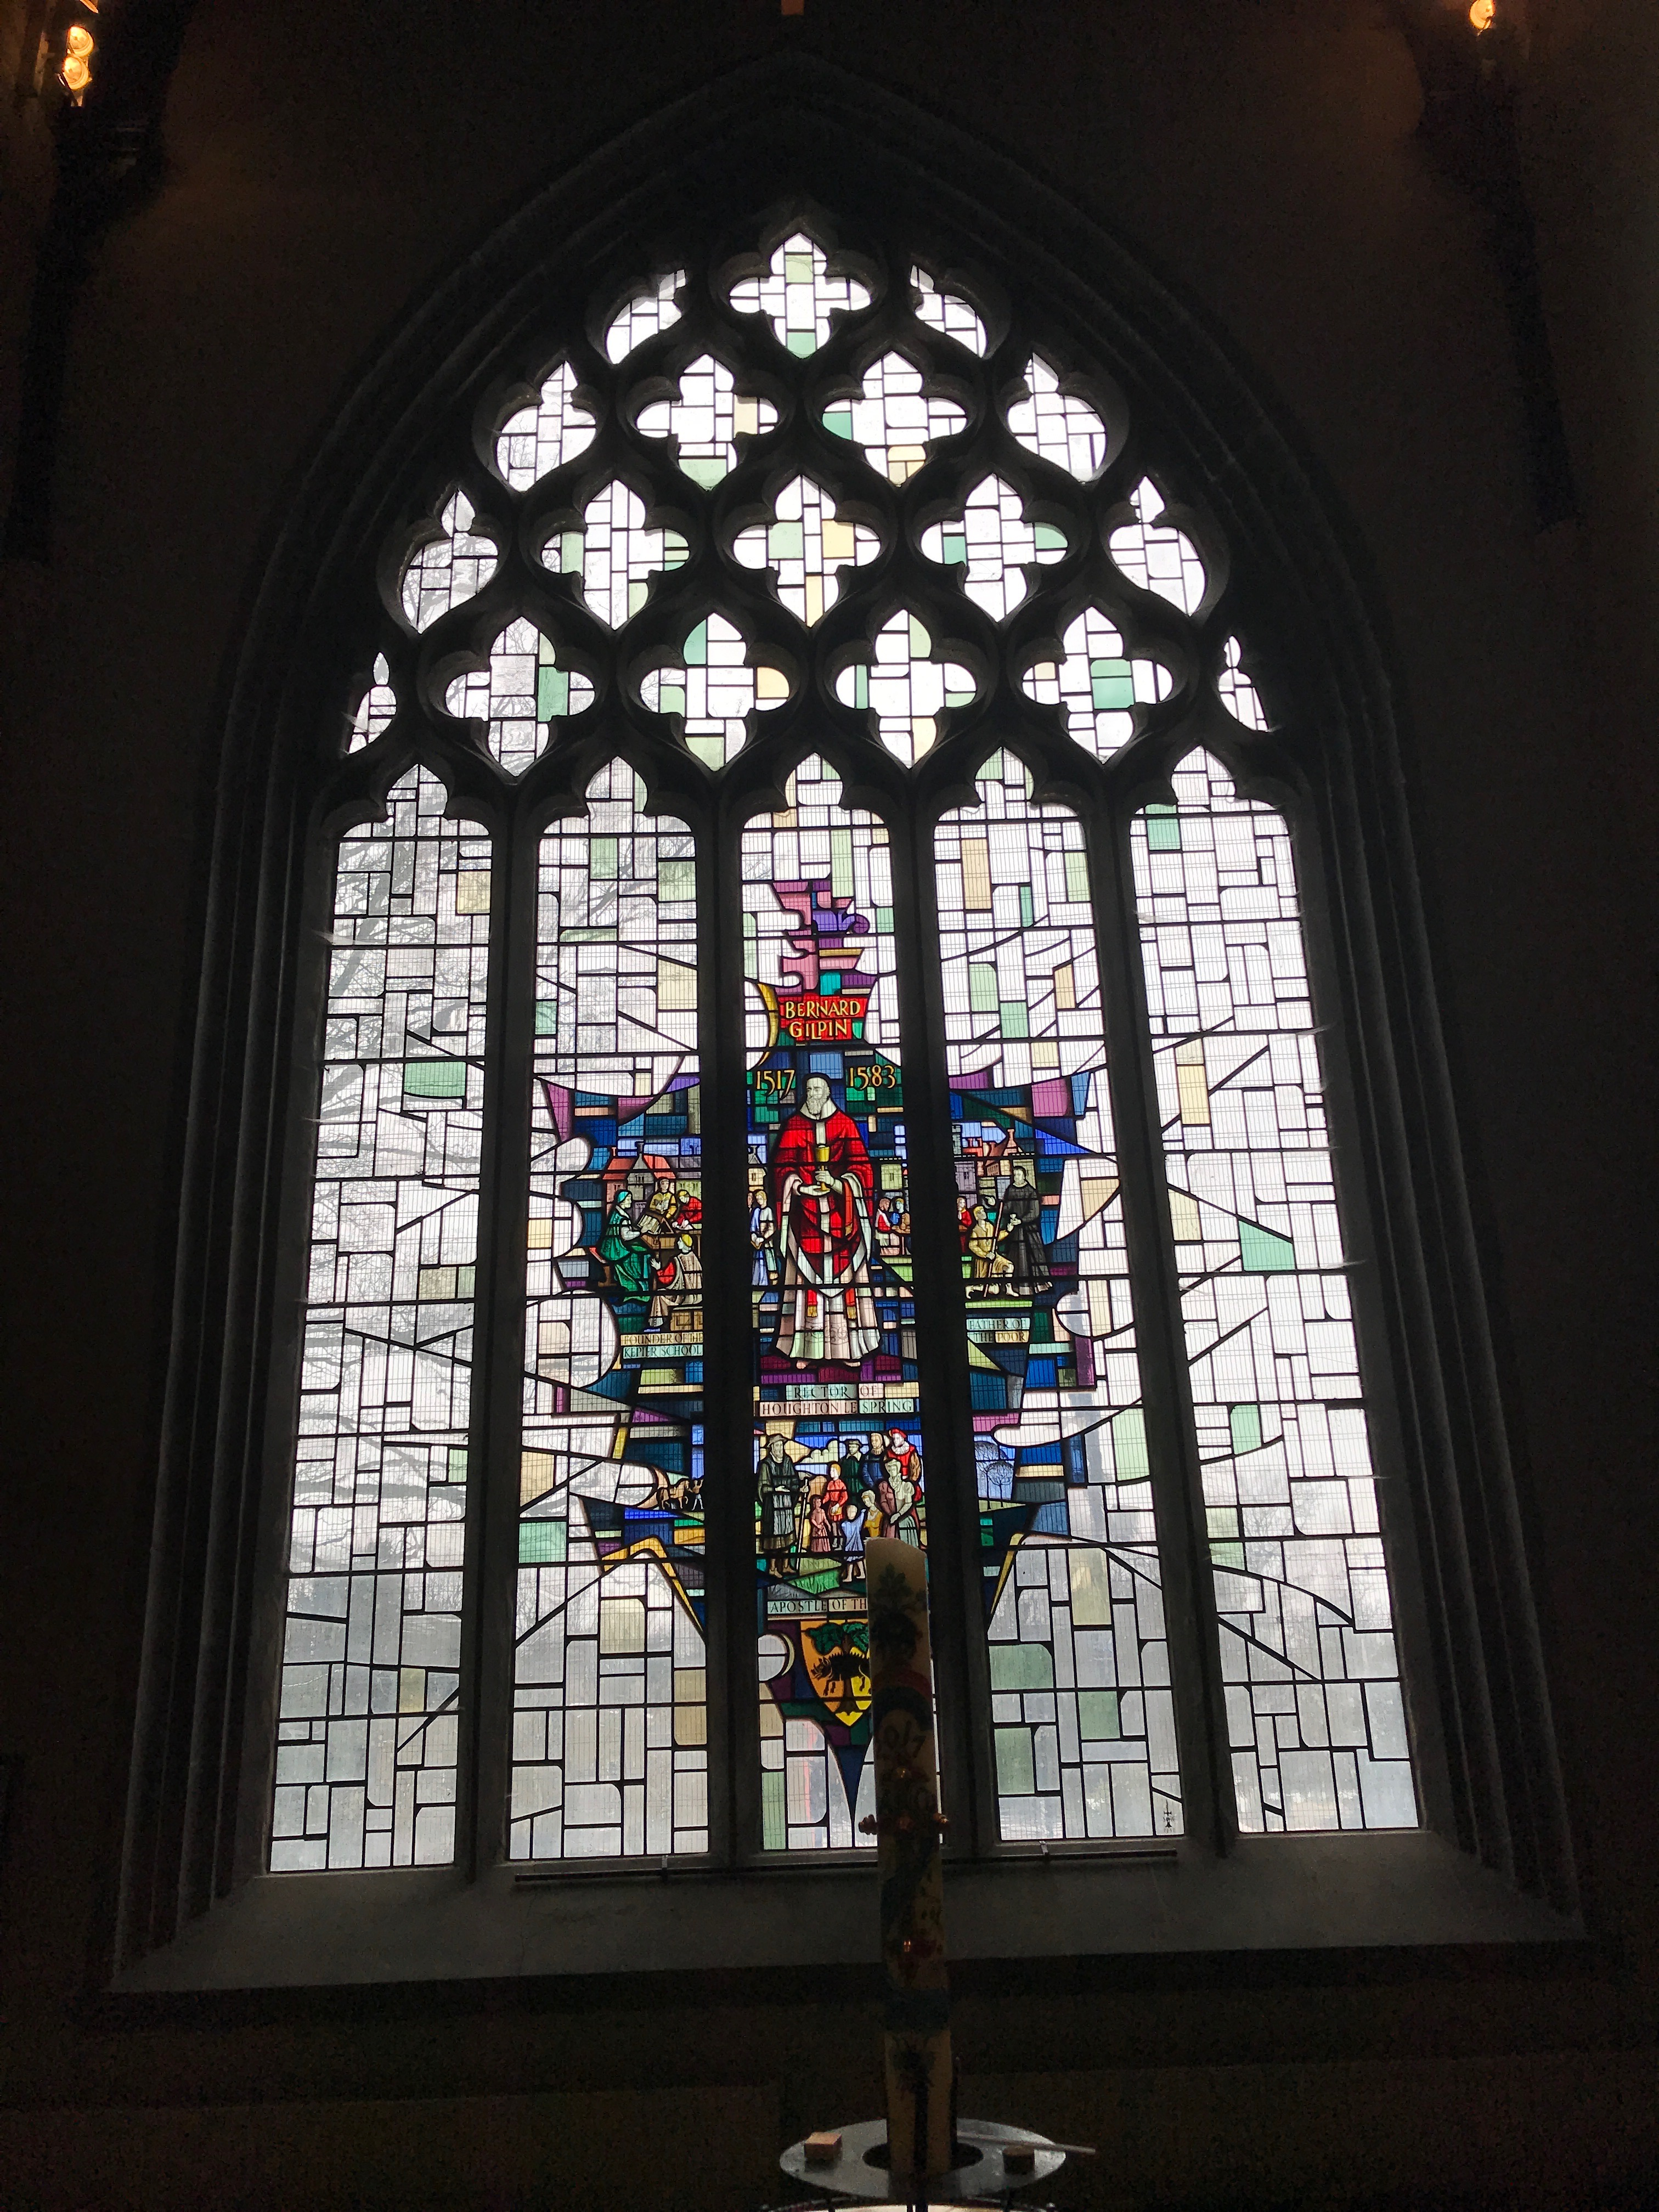 Stained glass Gilpin window, Houghton le Spring